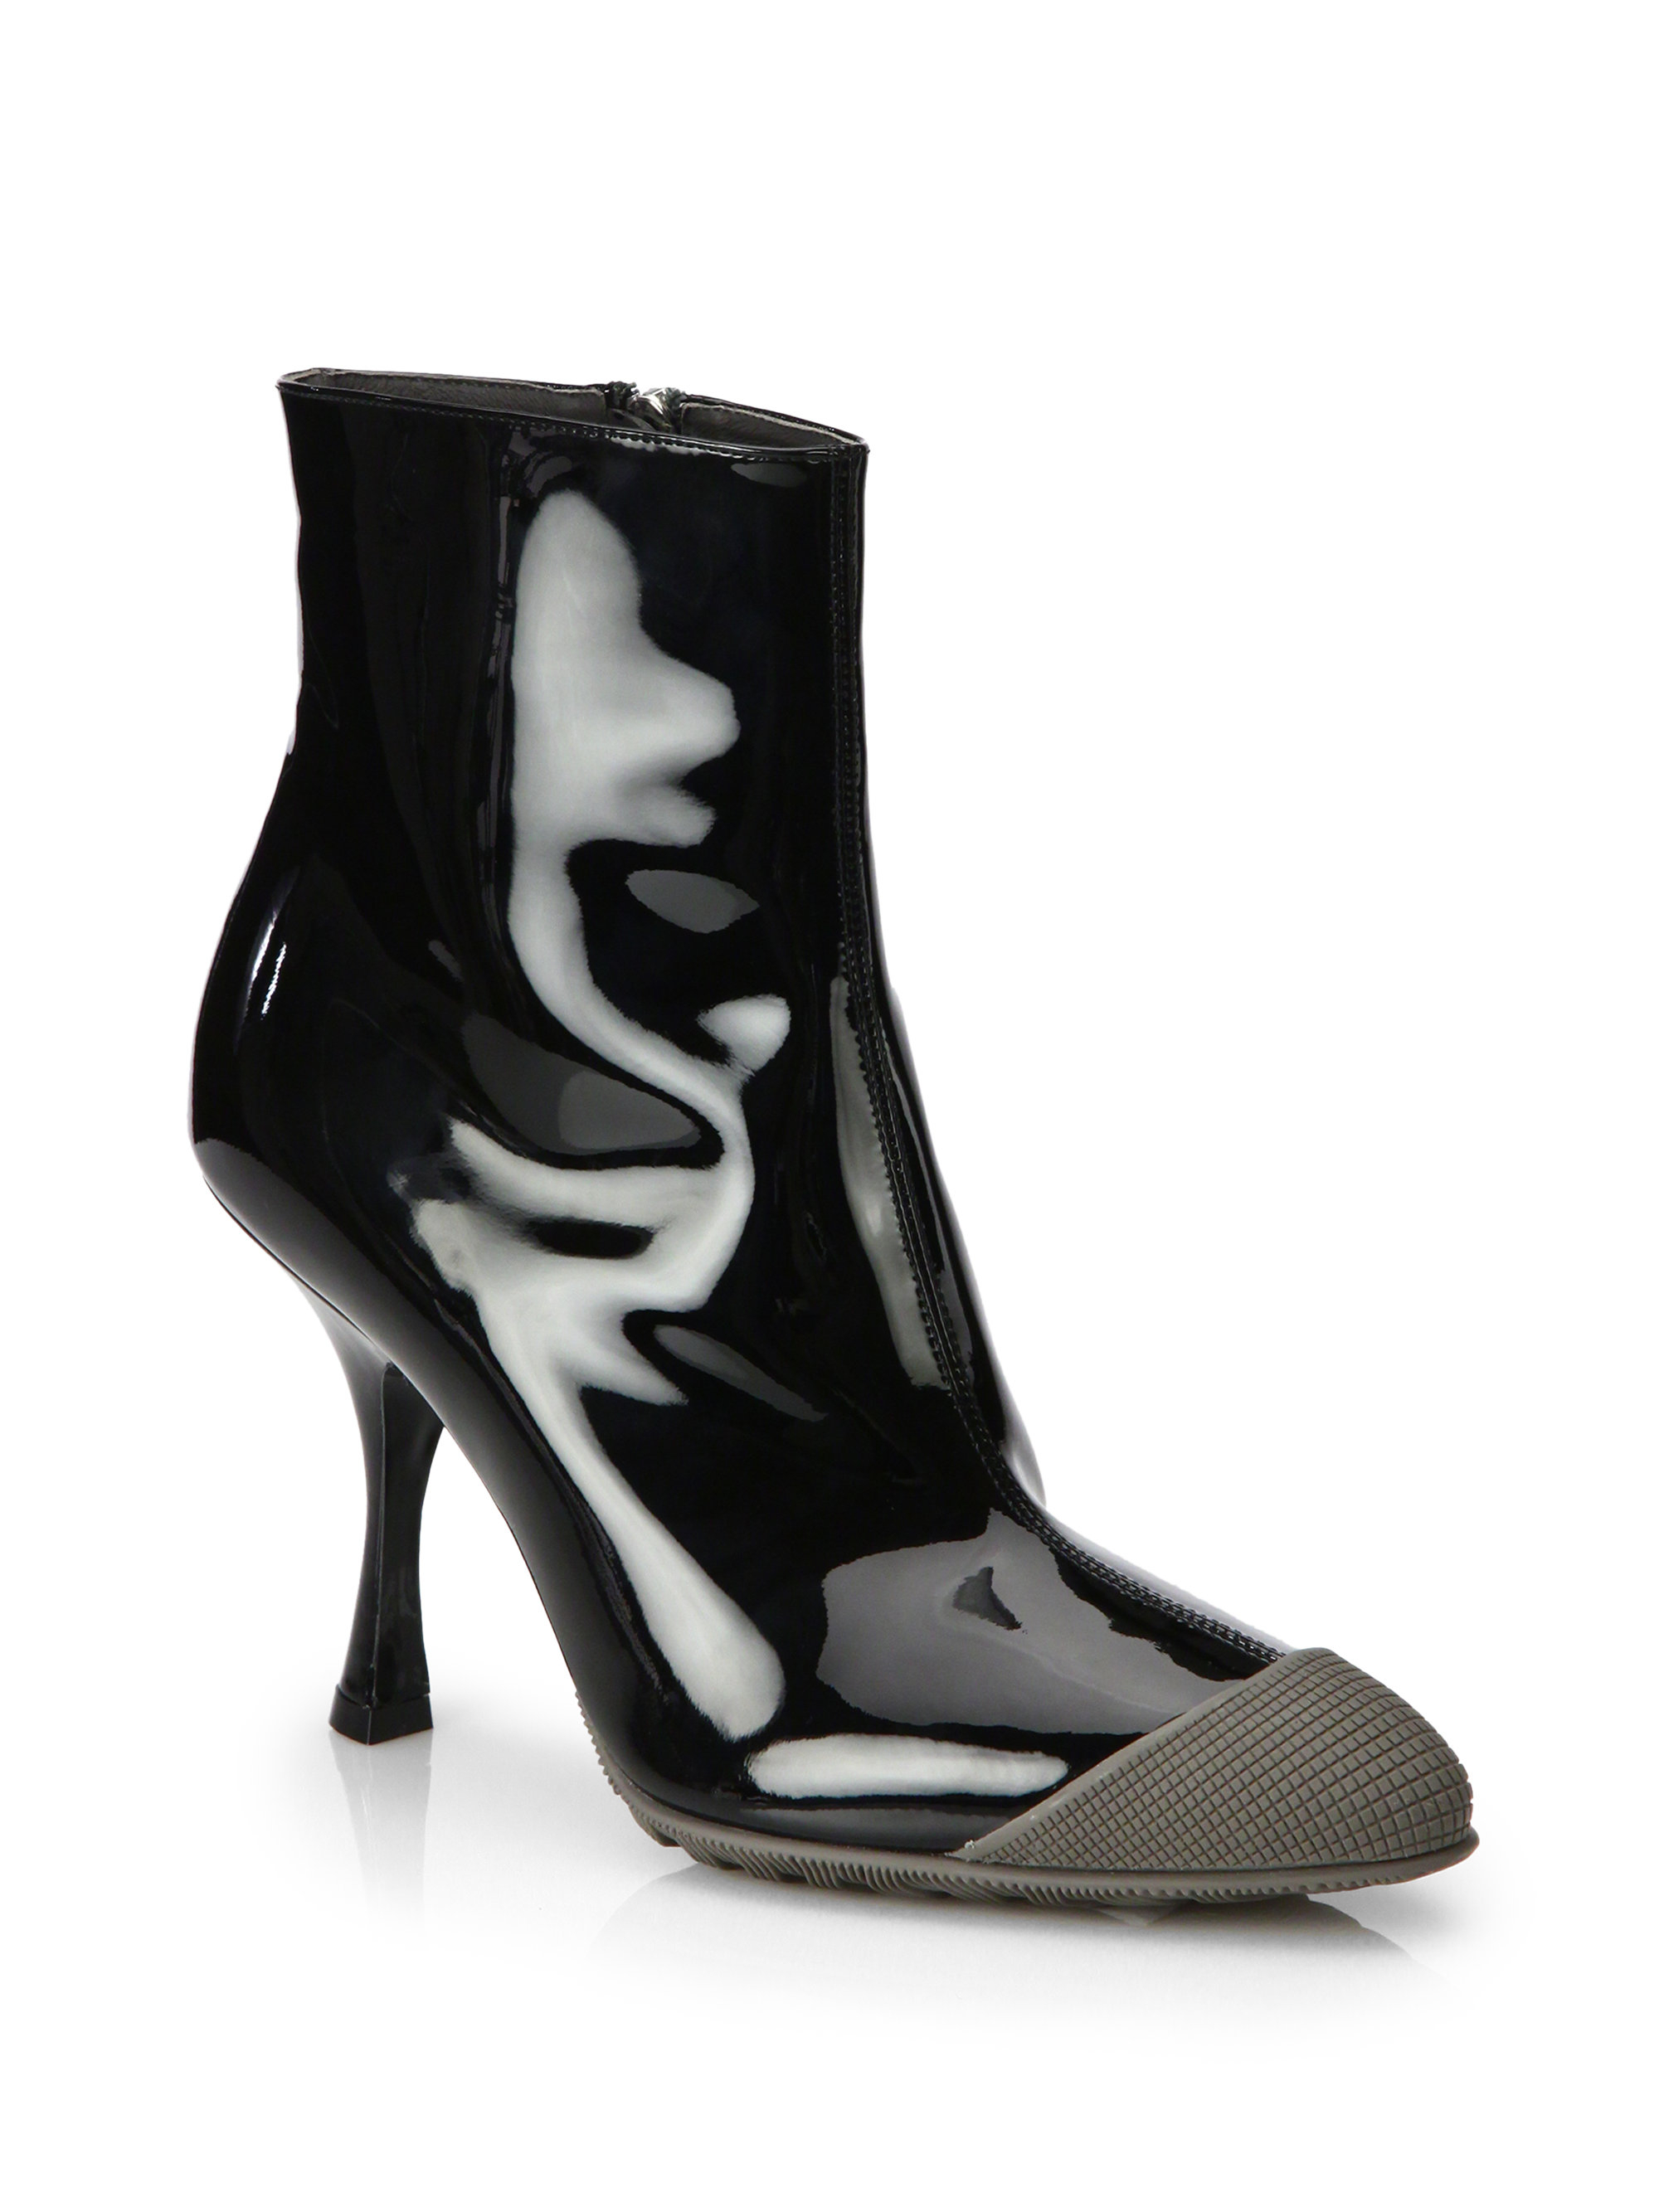 Lyst Miu Miu Patent Leather Rubber Captoe Ankle Boots In